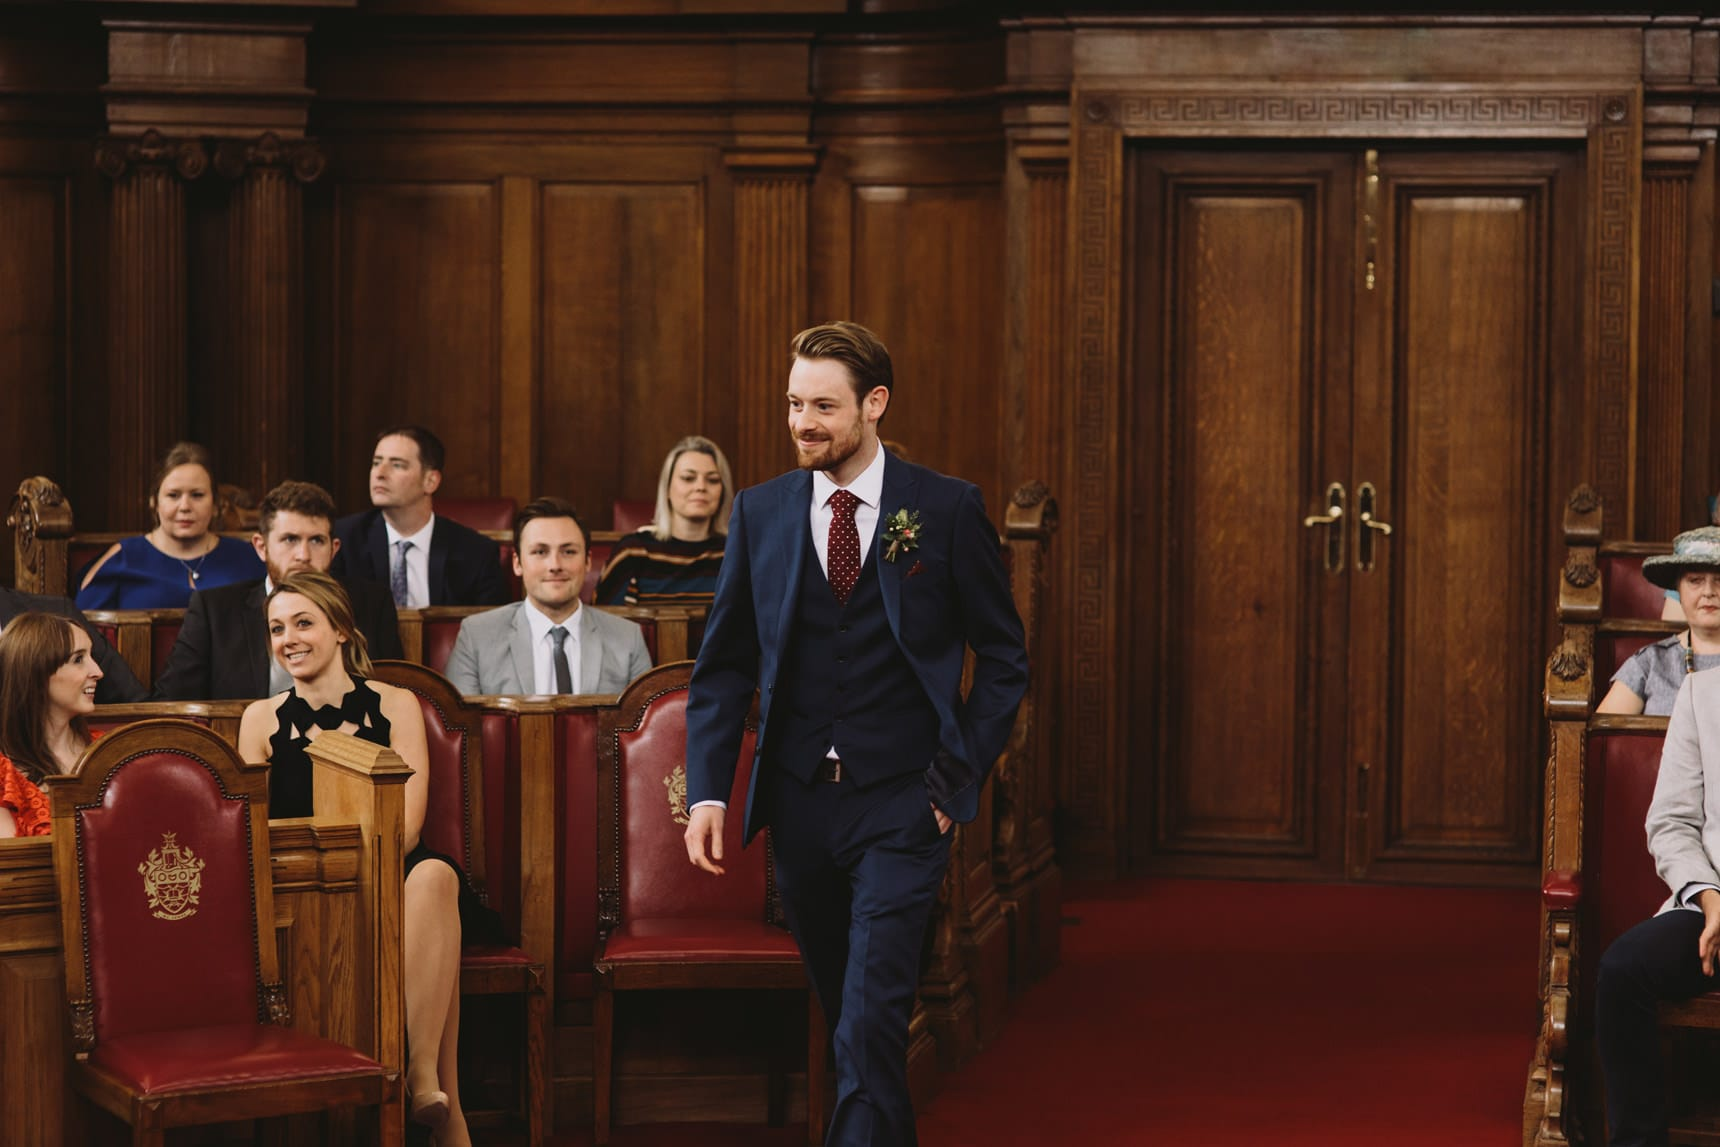 weddings at islington town hall